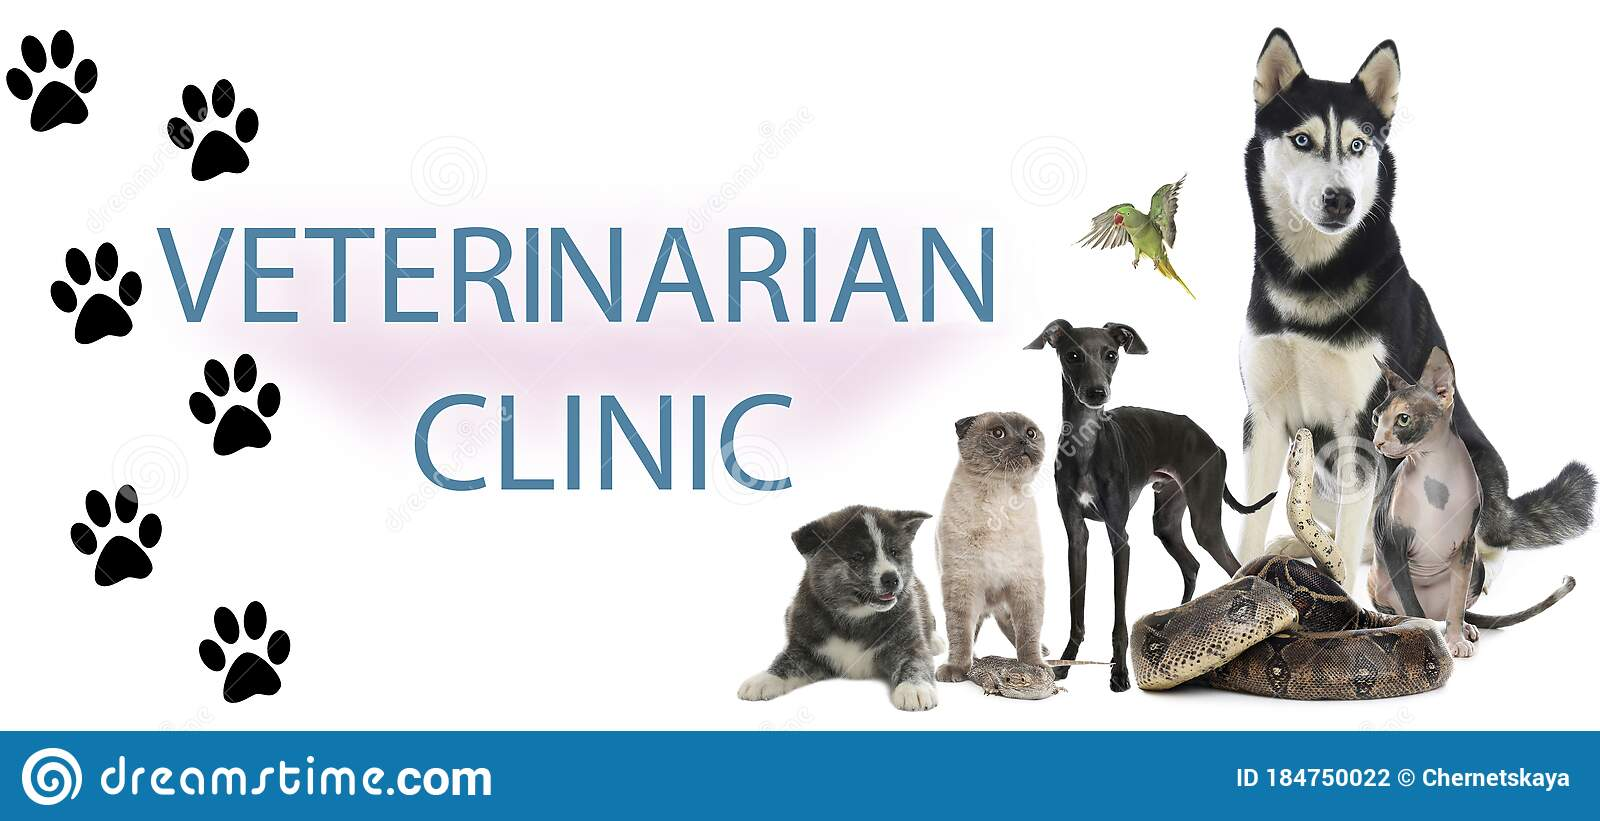 Group Of Cute Pets And Text Veterinarian Clinic On White Background Banner Design Stock Photo Image Of Collection Concept 184750022